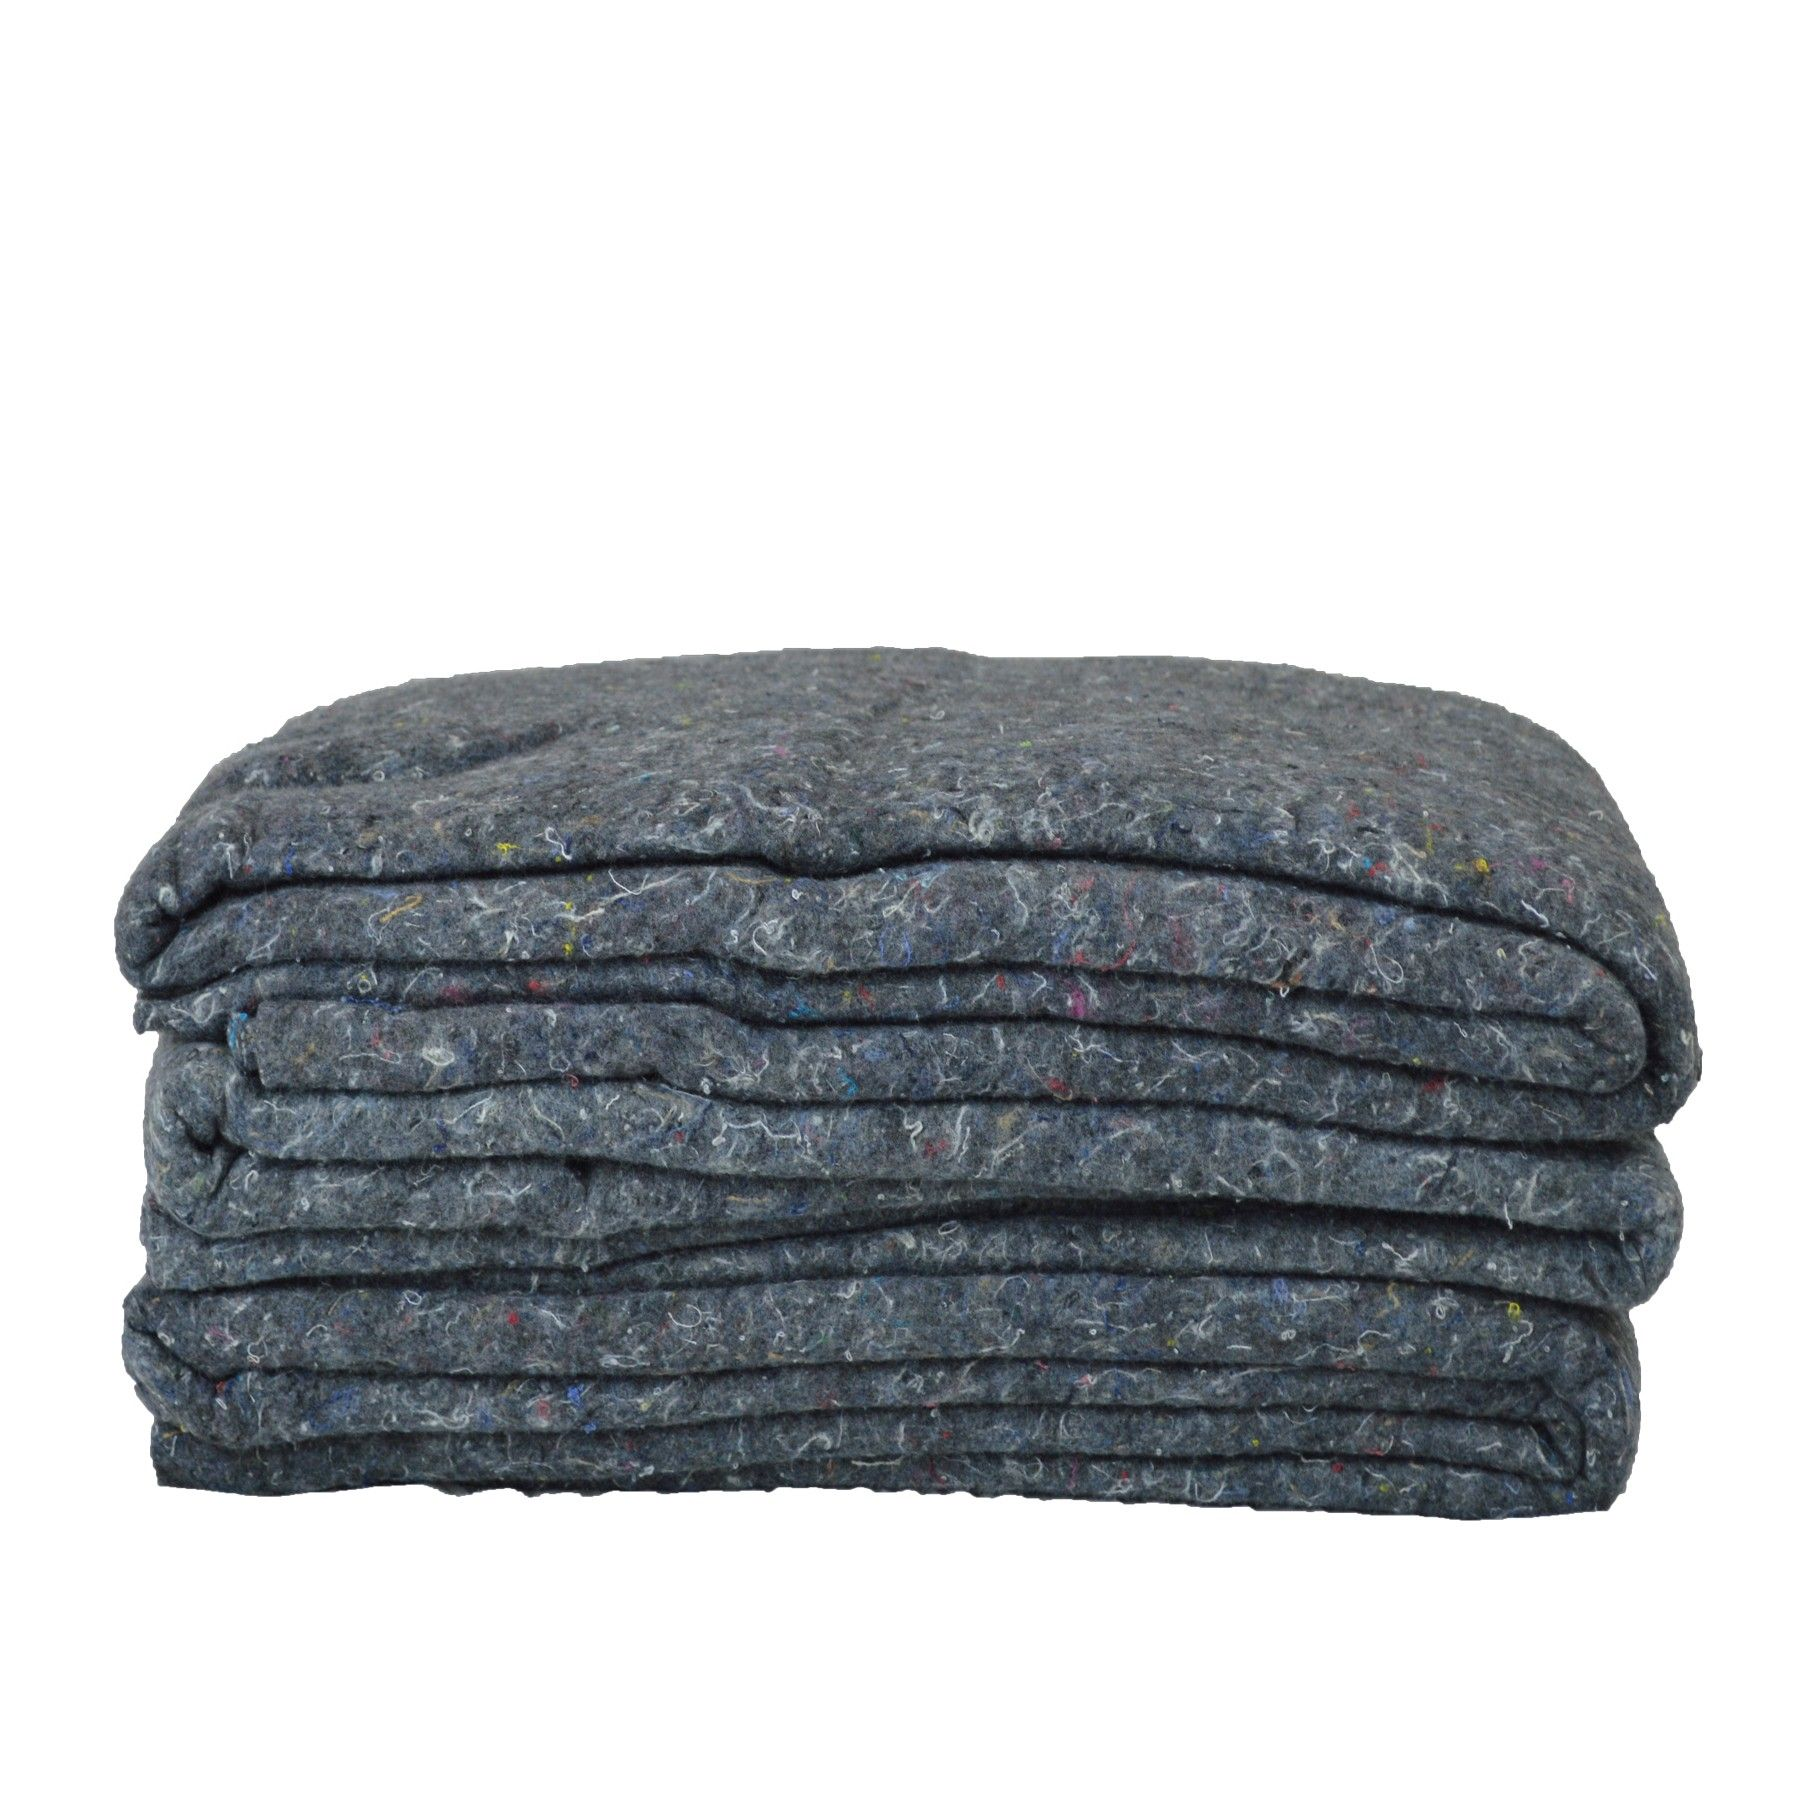 Textile Moving Blankets Qty 3 Size 54 Quot X 72 Quot Color Grey Material Made In North America Quot Moving Blankets Moving And Storage Moving Pads